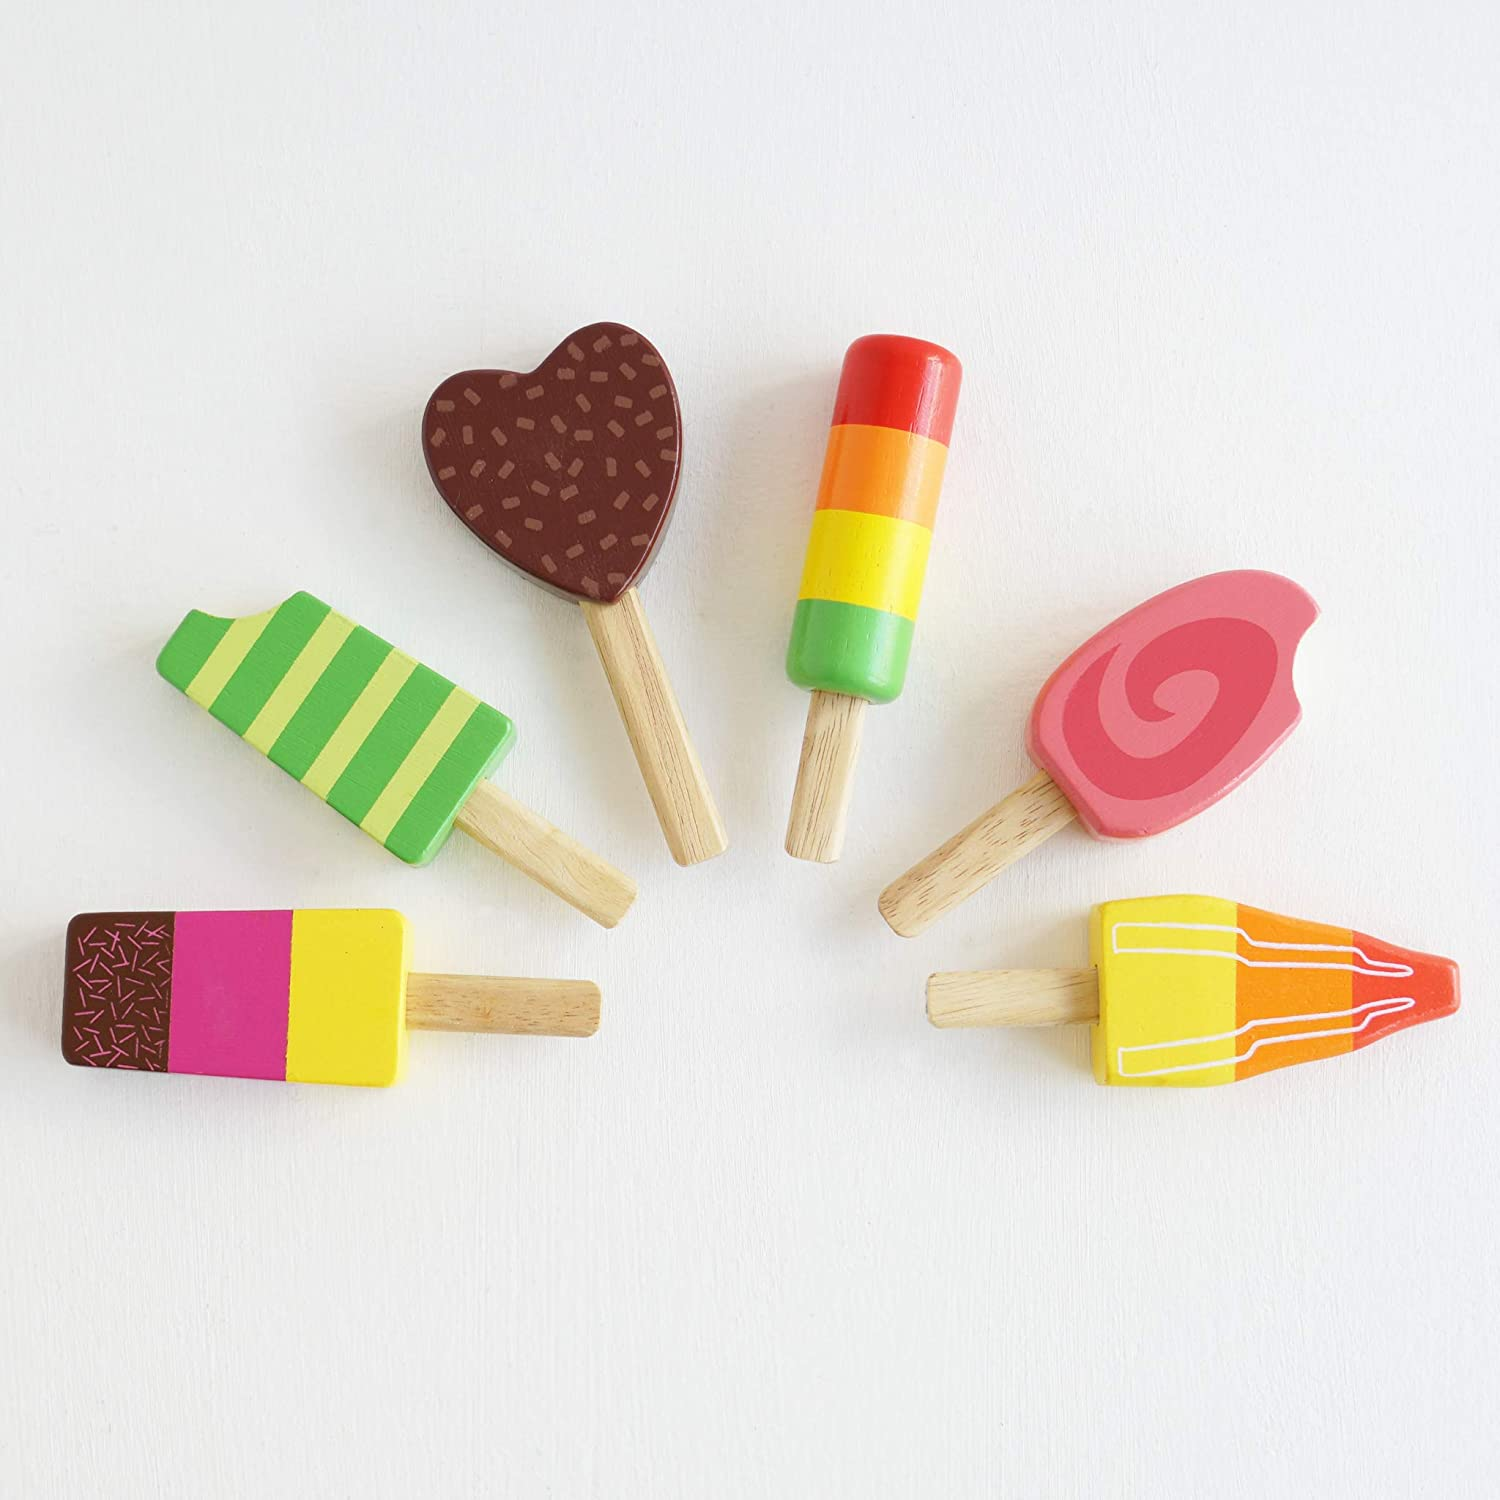 Le Toy Van Honeybake Collection Ice Lollies Set Premium Wooden Toys for Kids Ages 3 Years /& Up